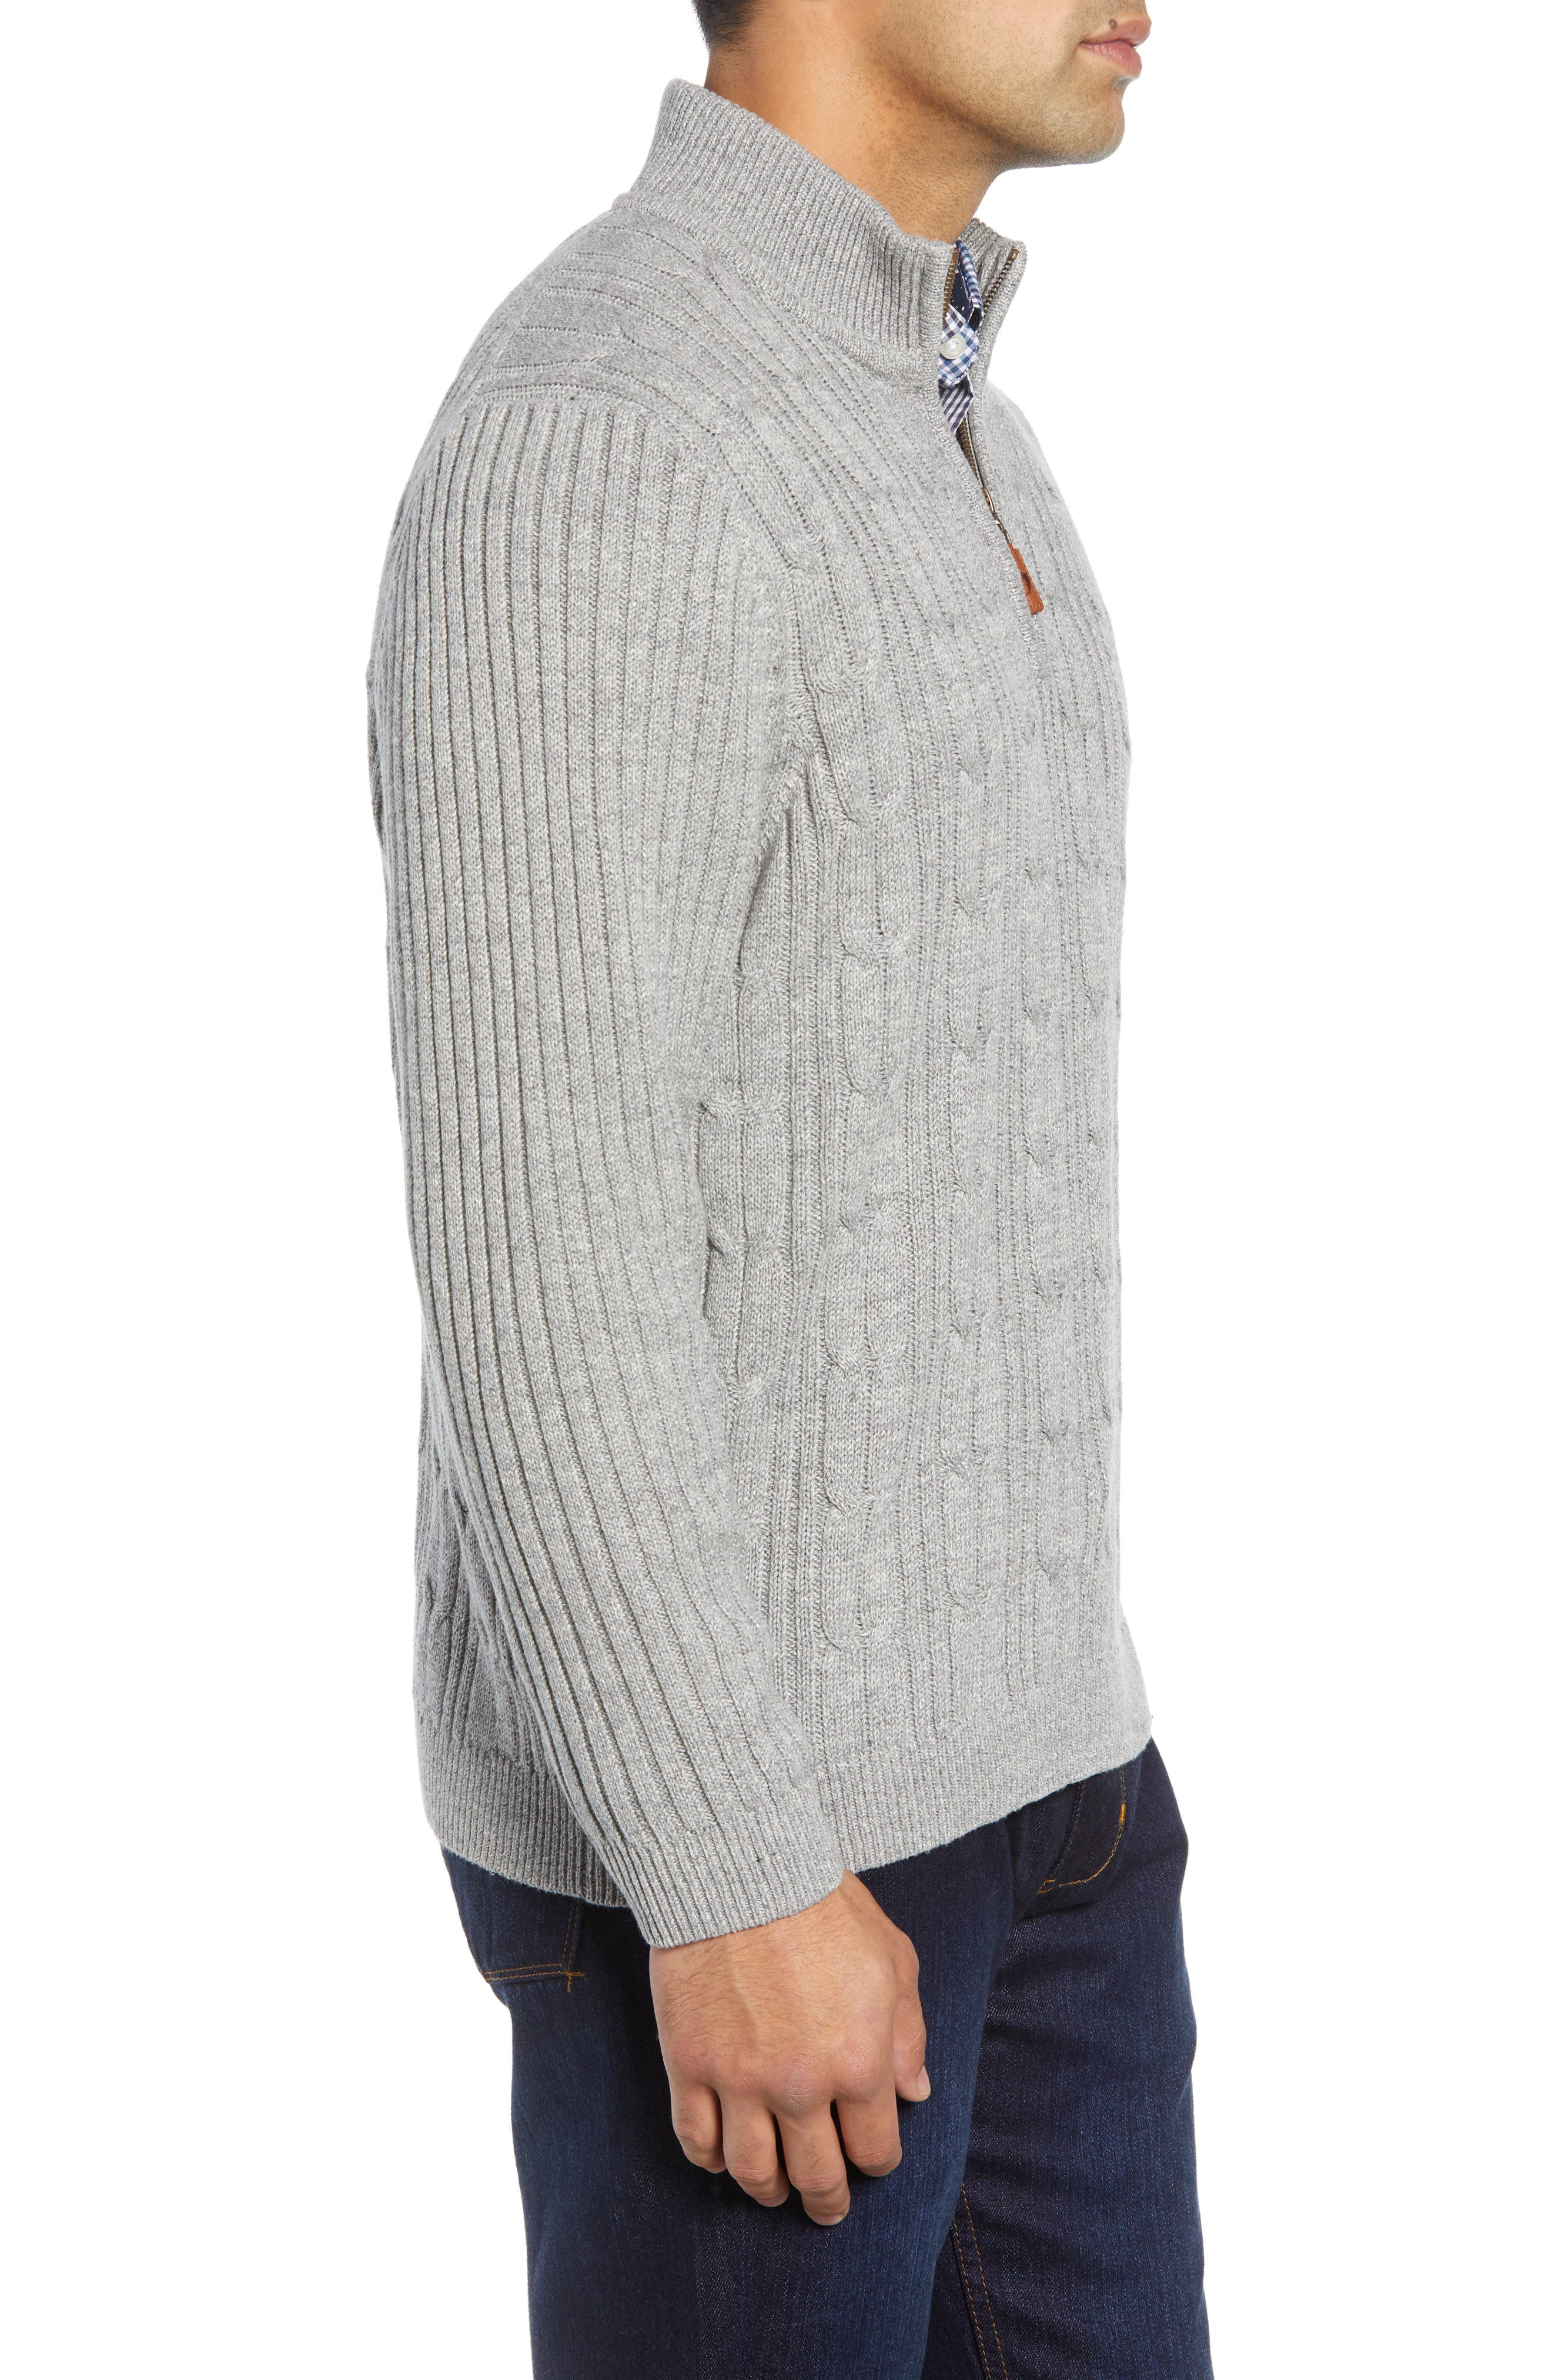 Tenorio Cable Knit Zip Sweater,                             Alternate thumbnail 3, color,                             LIGHT STORM